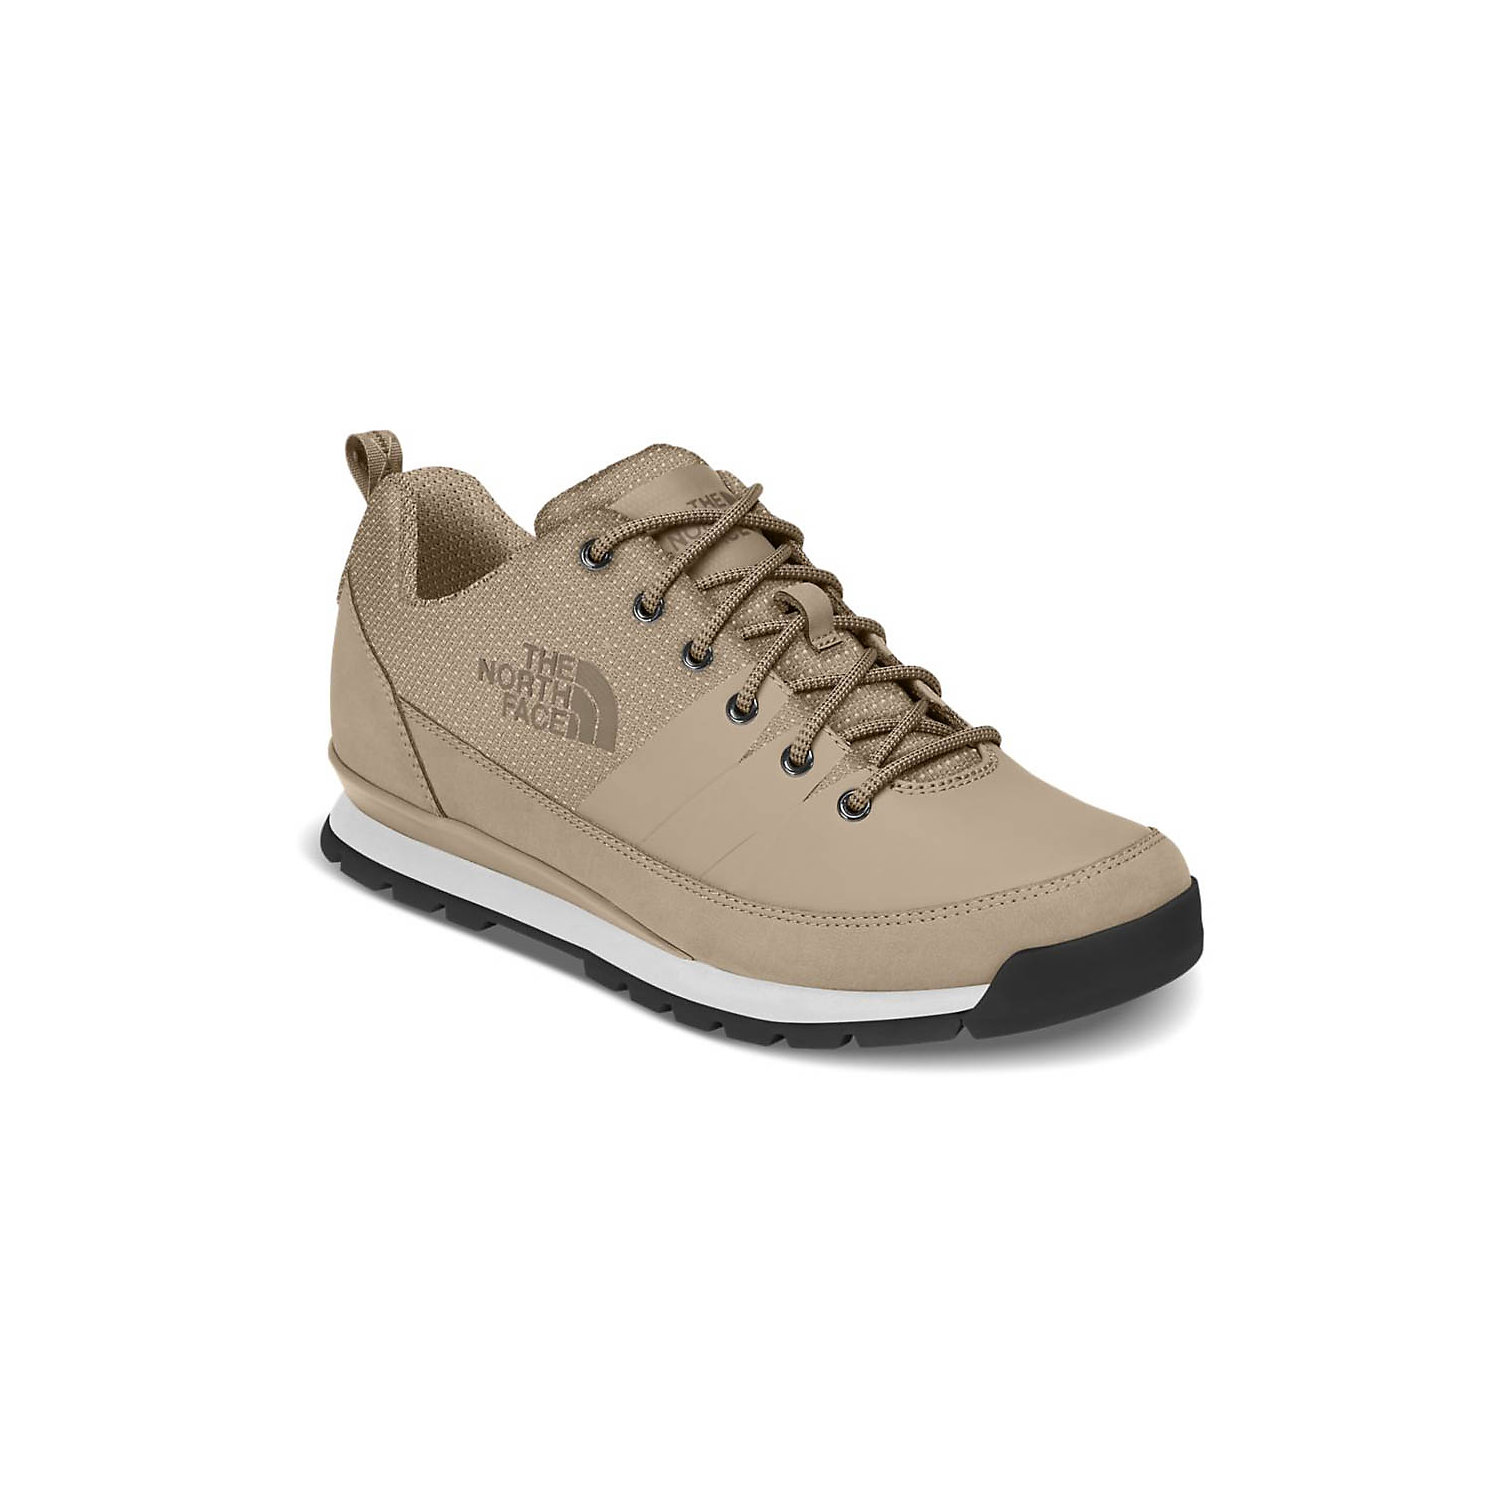 3e8b7e1f9 The North Face Men's Back-To-Berkeley Low AM Shoe